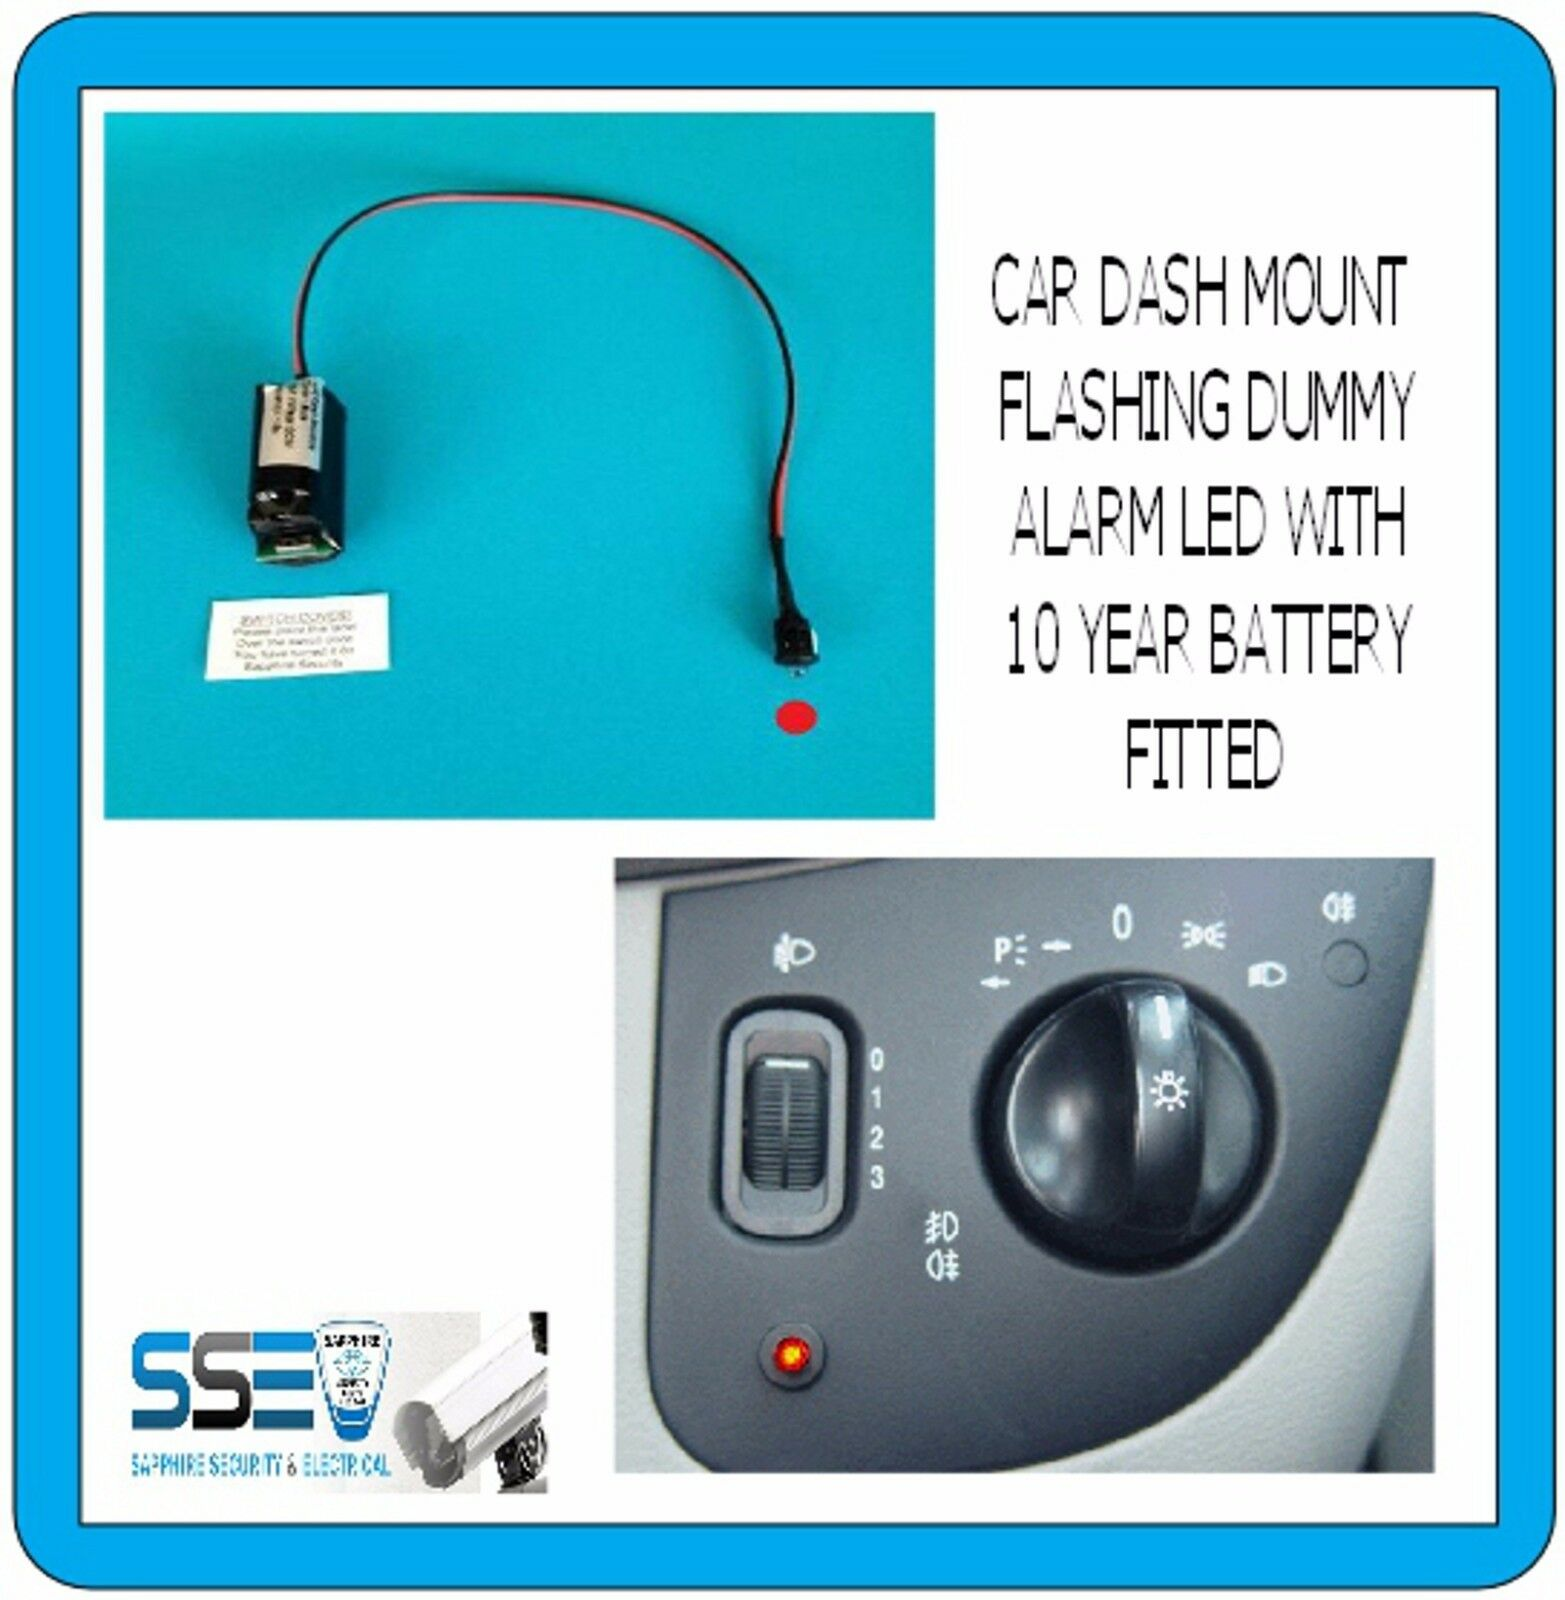 Car Alarm Dummy Flashing LED - No Wiring Required - Fit and Flash ...